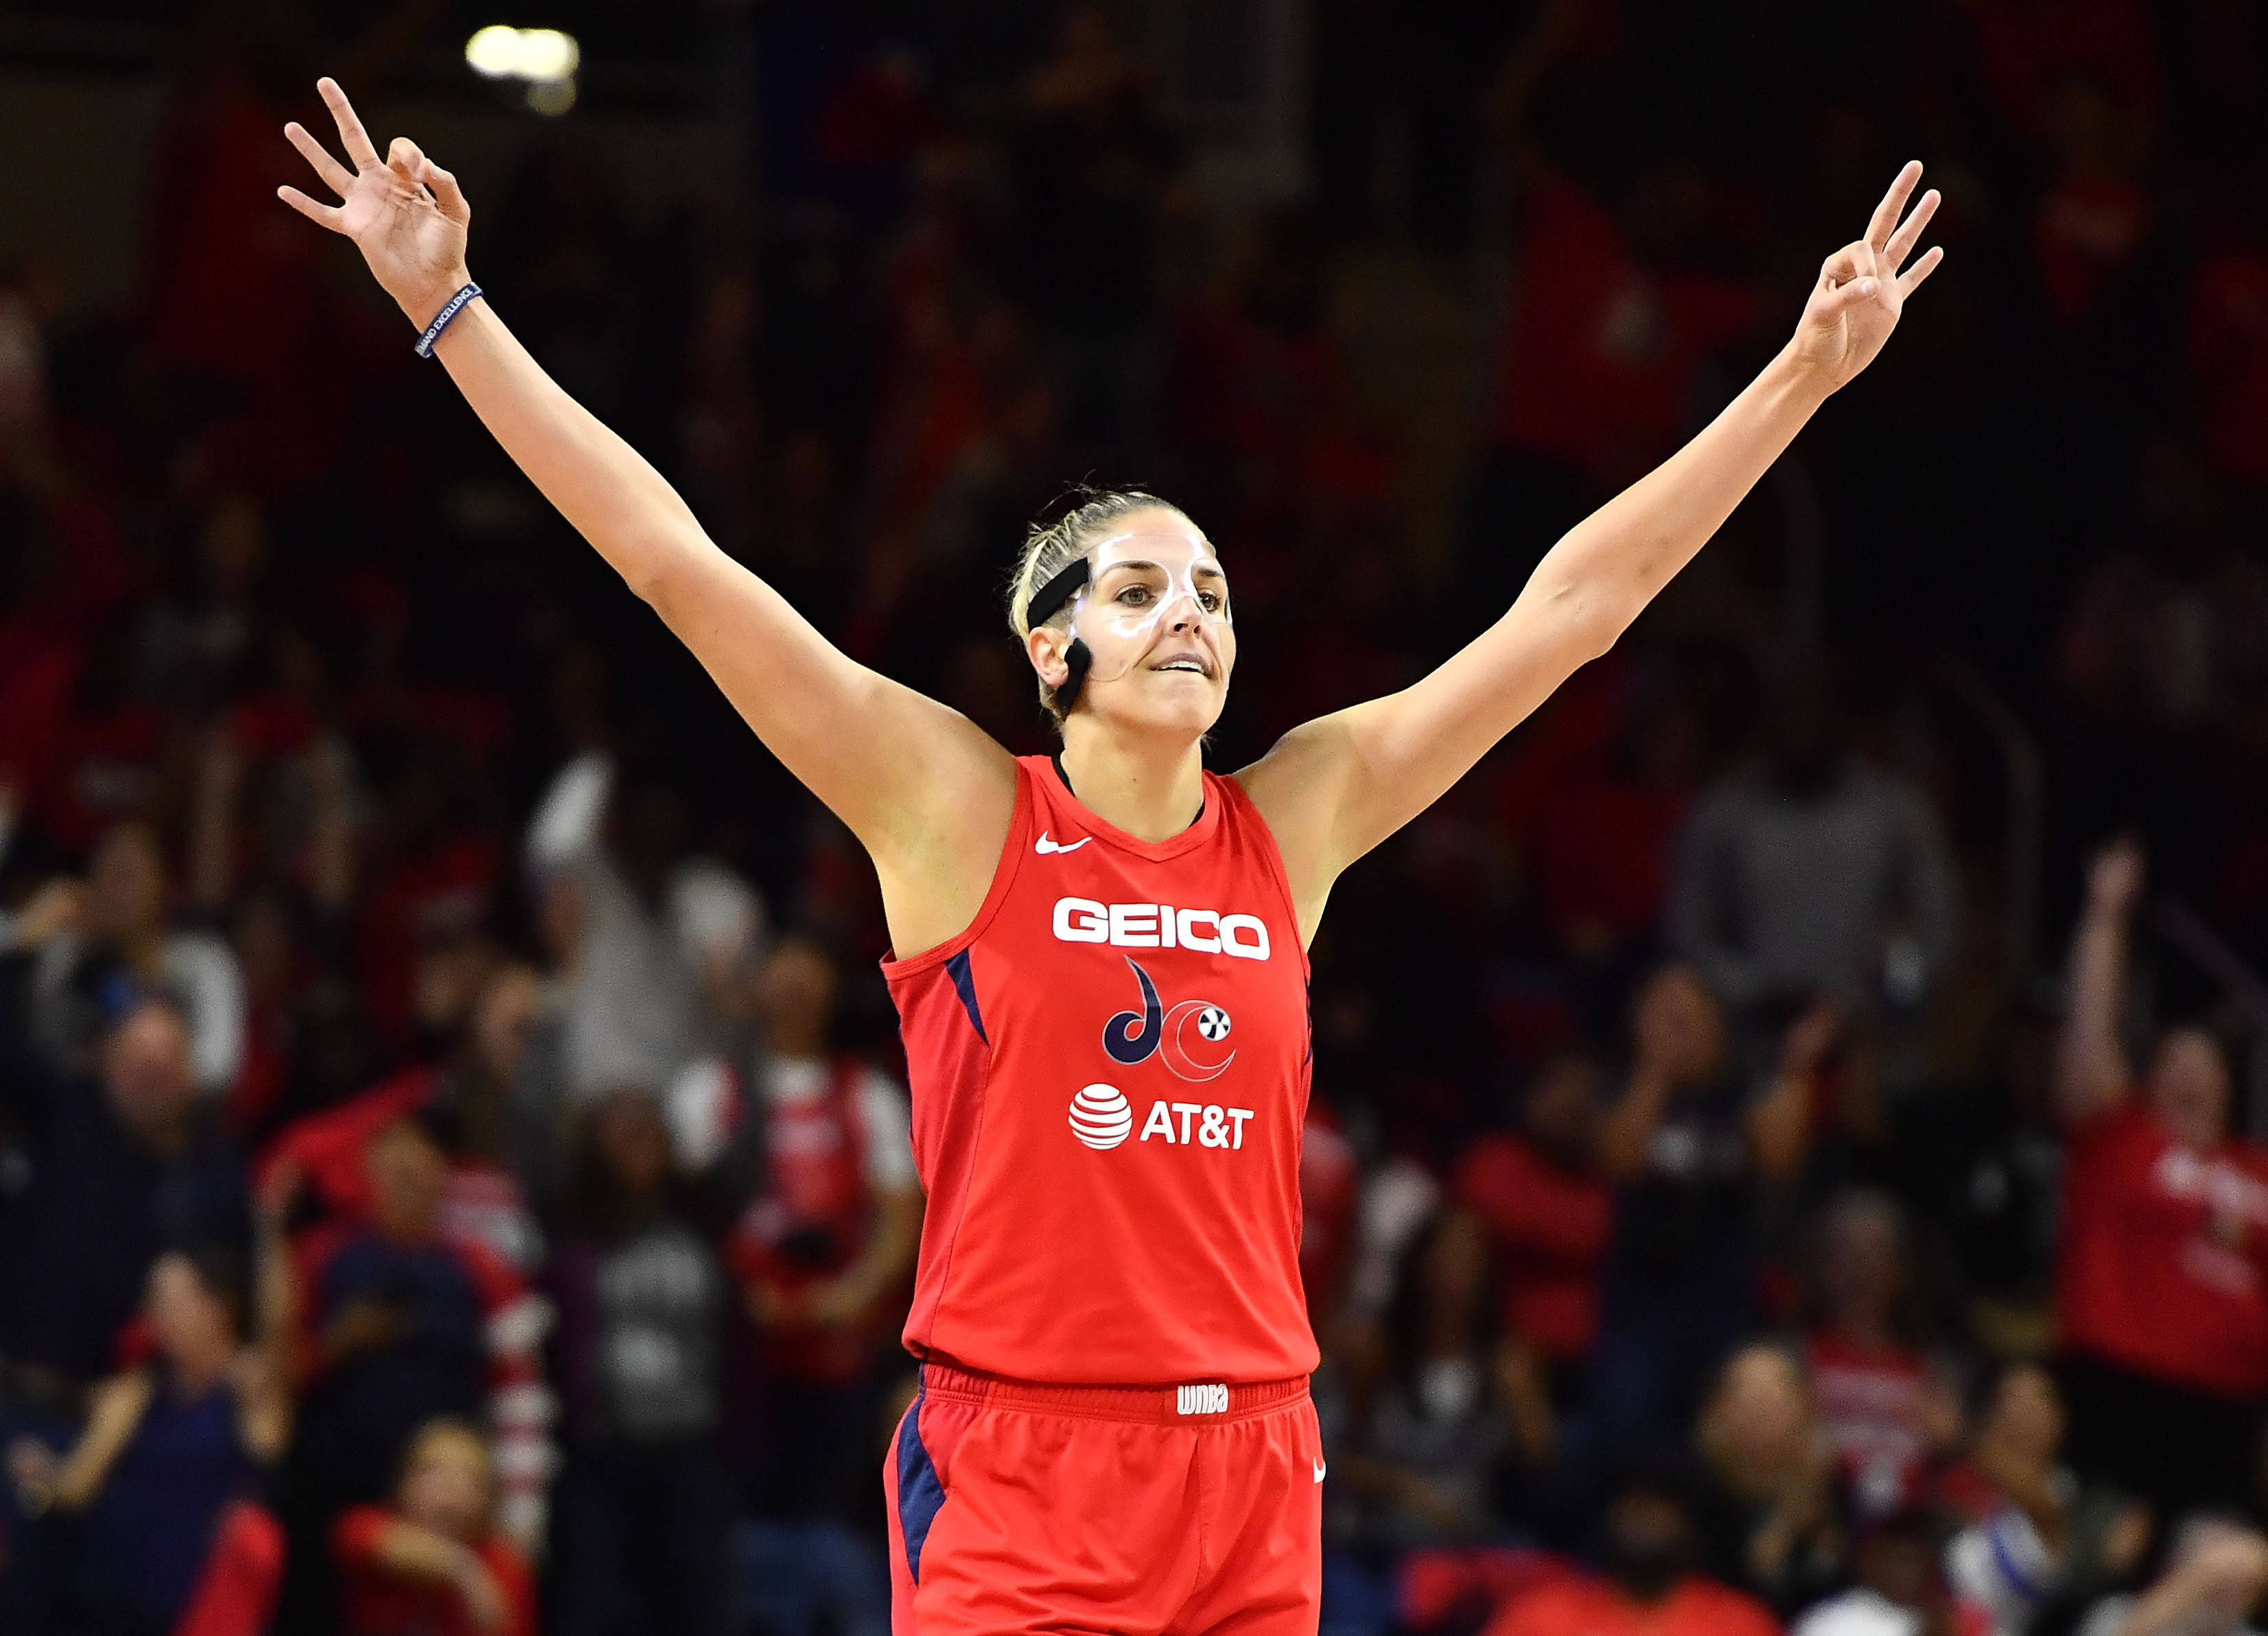 Elena Delle Donne poses after her teammates made a three during the 2019 WNBA Finals between the Washington Mystics and the Connecticut Sun.